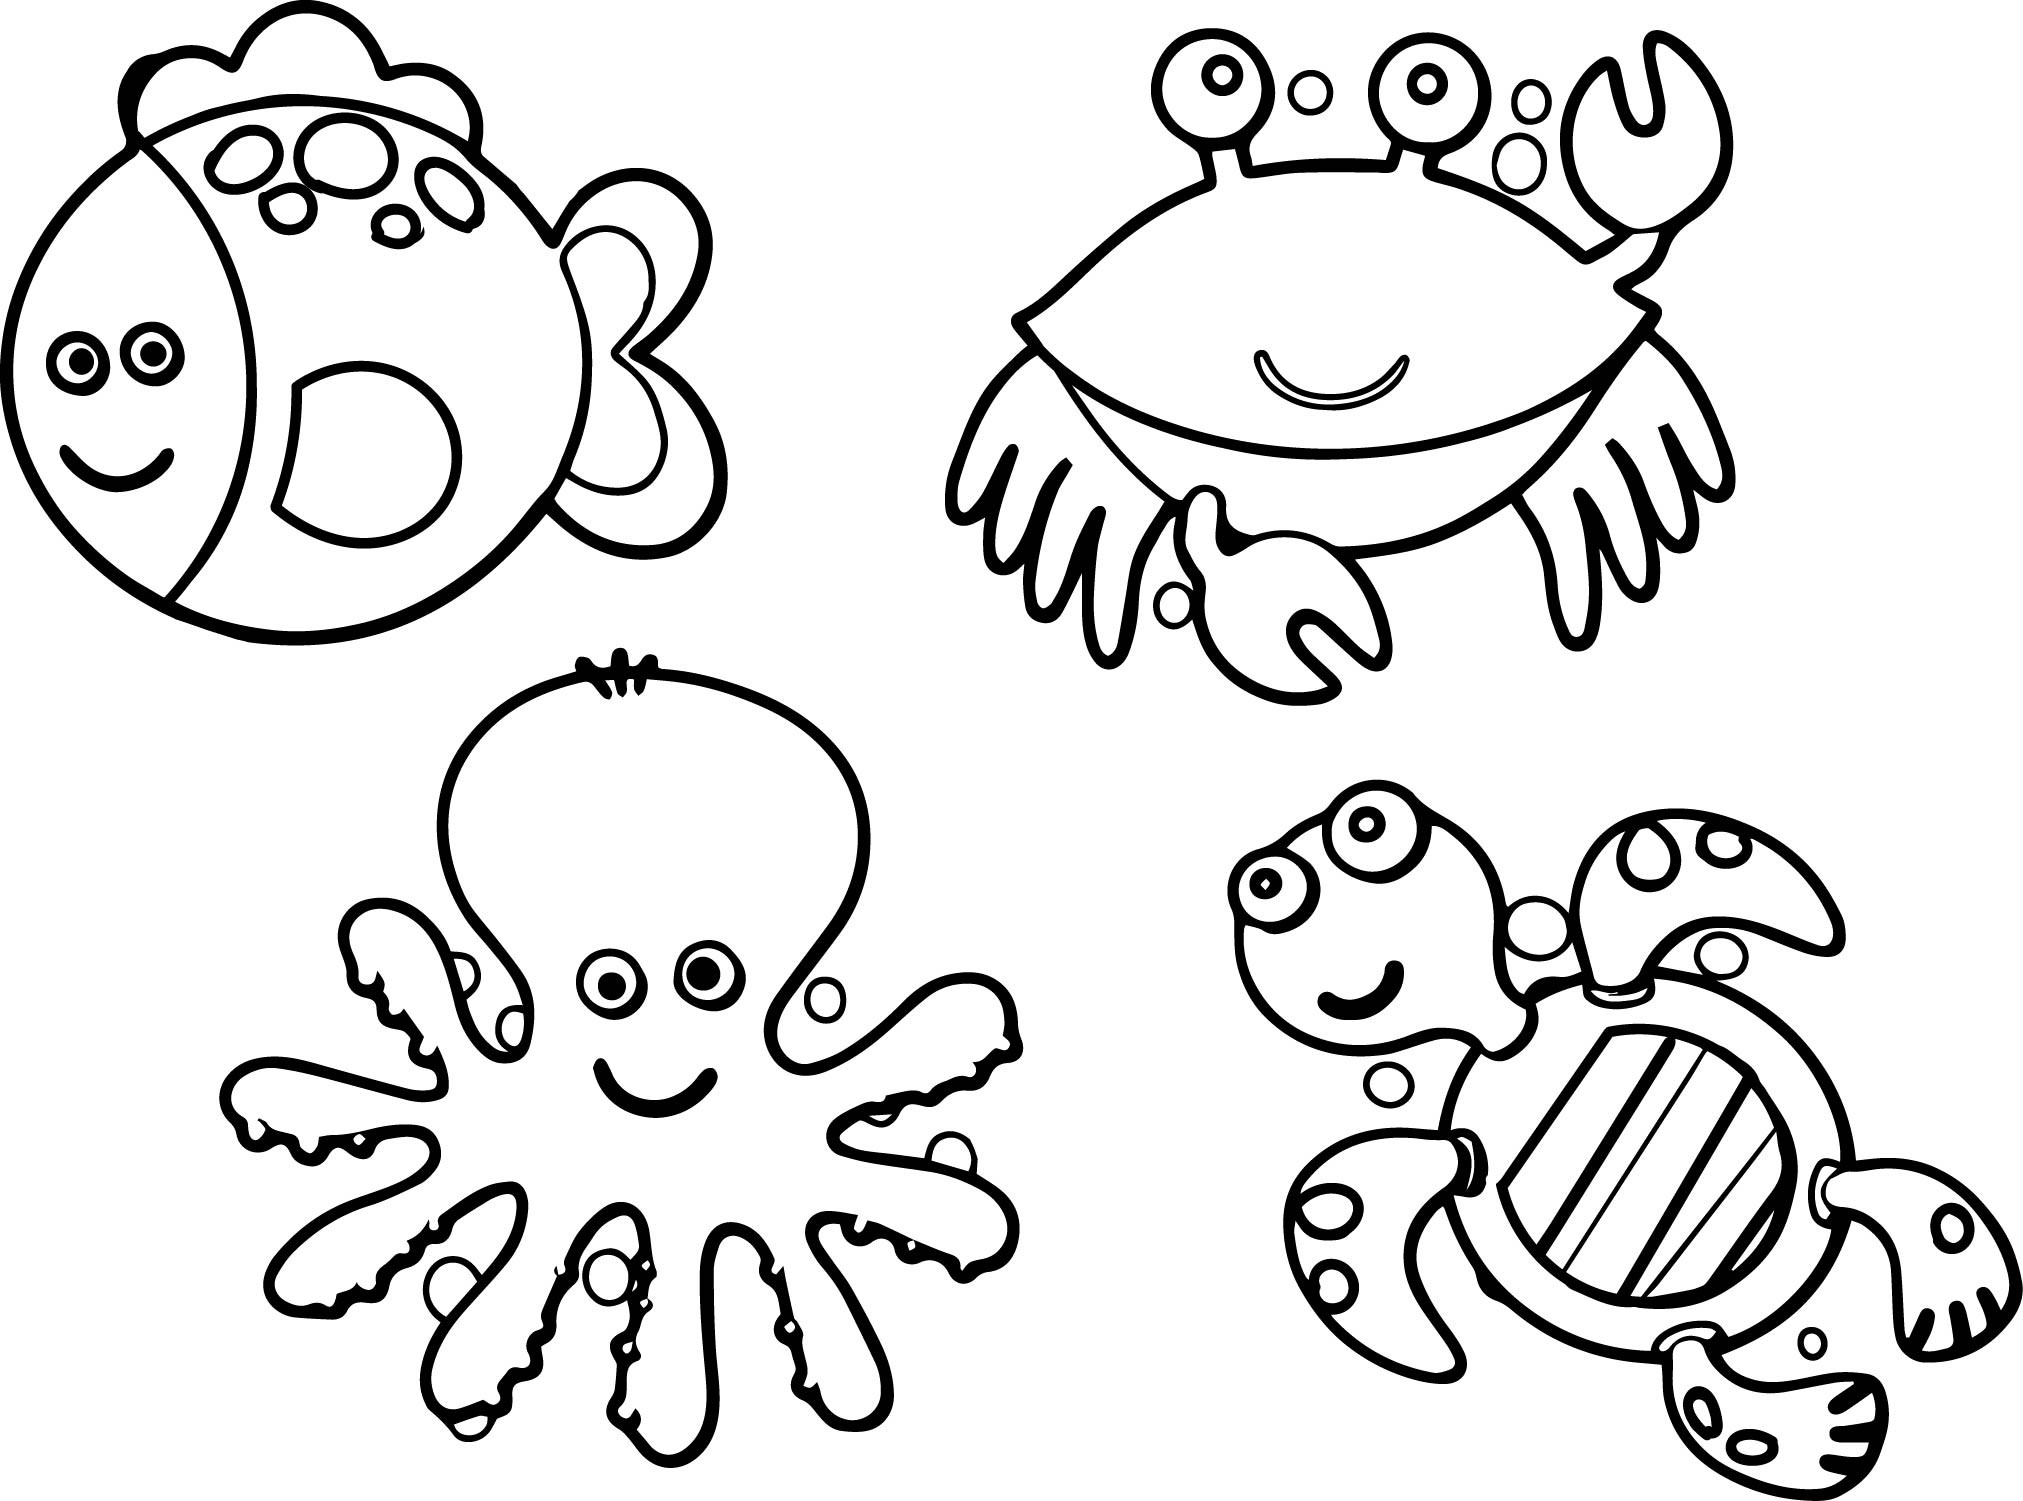 Underwater Animals Drawing at GetDrawings.com | Free for personal ...